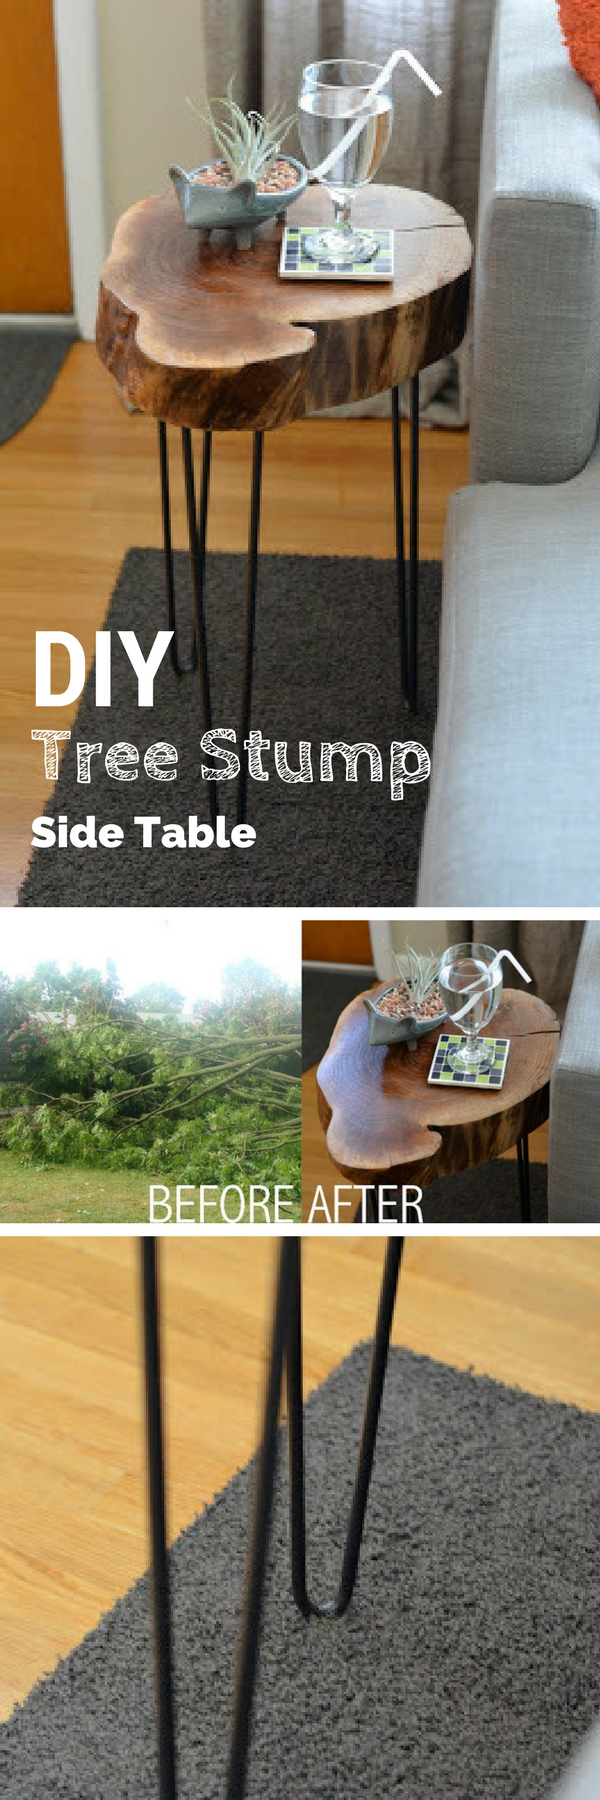 easy unique diy side table ideas you can build budget tree stump accent plans sofa tables check out the target occasional round wood reclaimed sliding barn doors decoration office